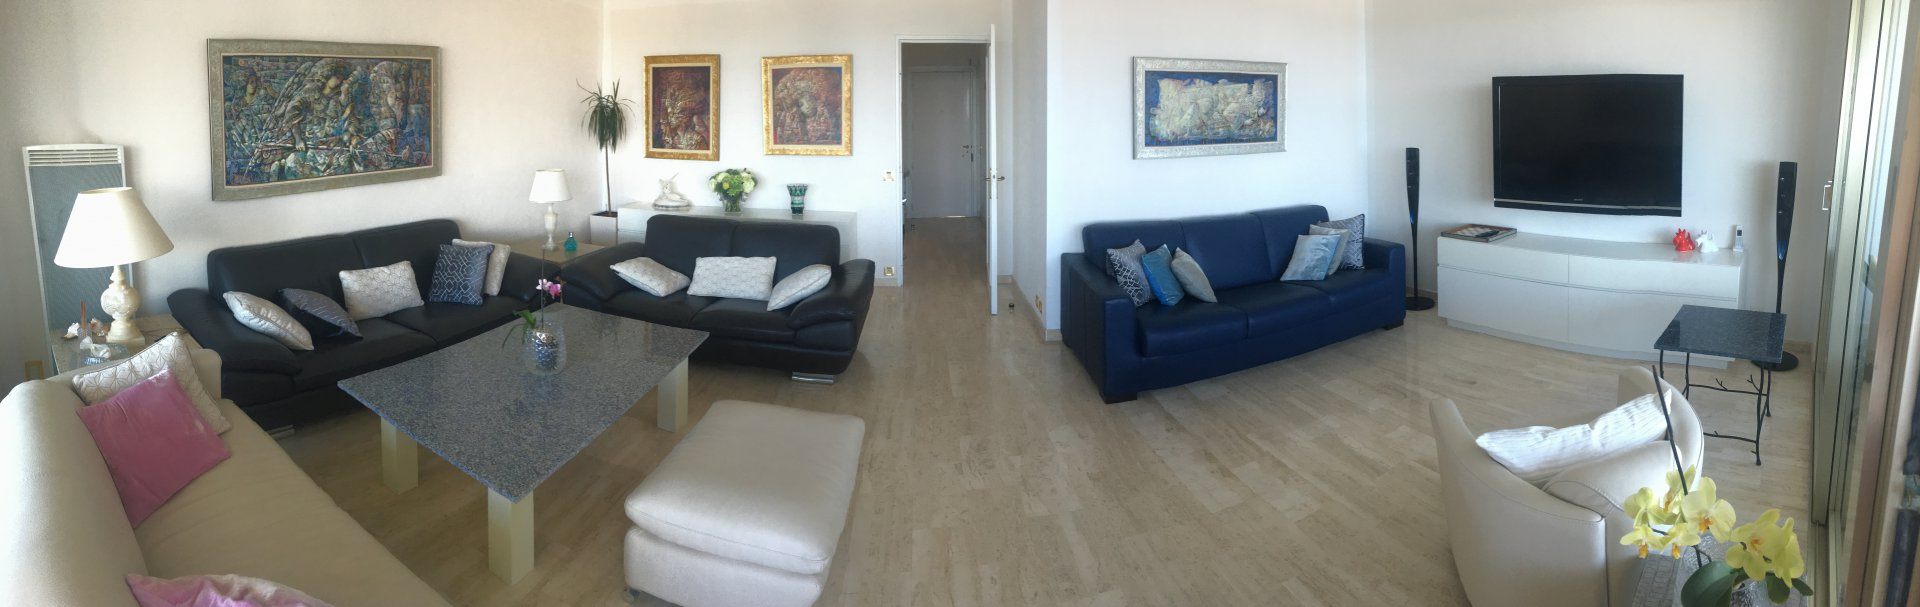 Seasonal rental Apartment - Villeneuve-Loubet Marina Baie des Anges